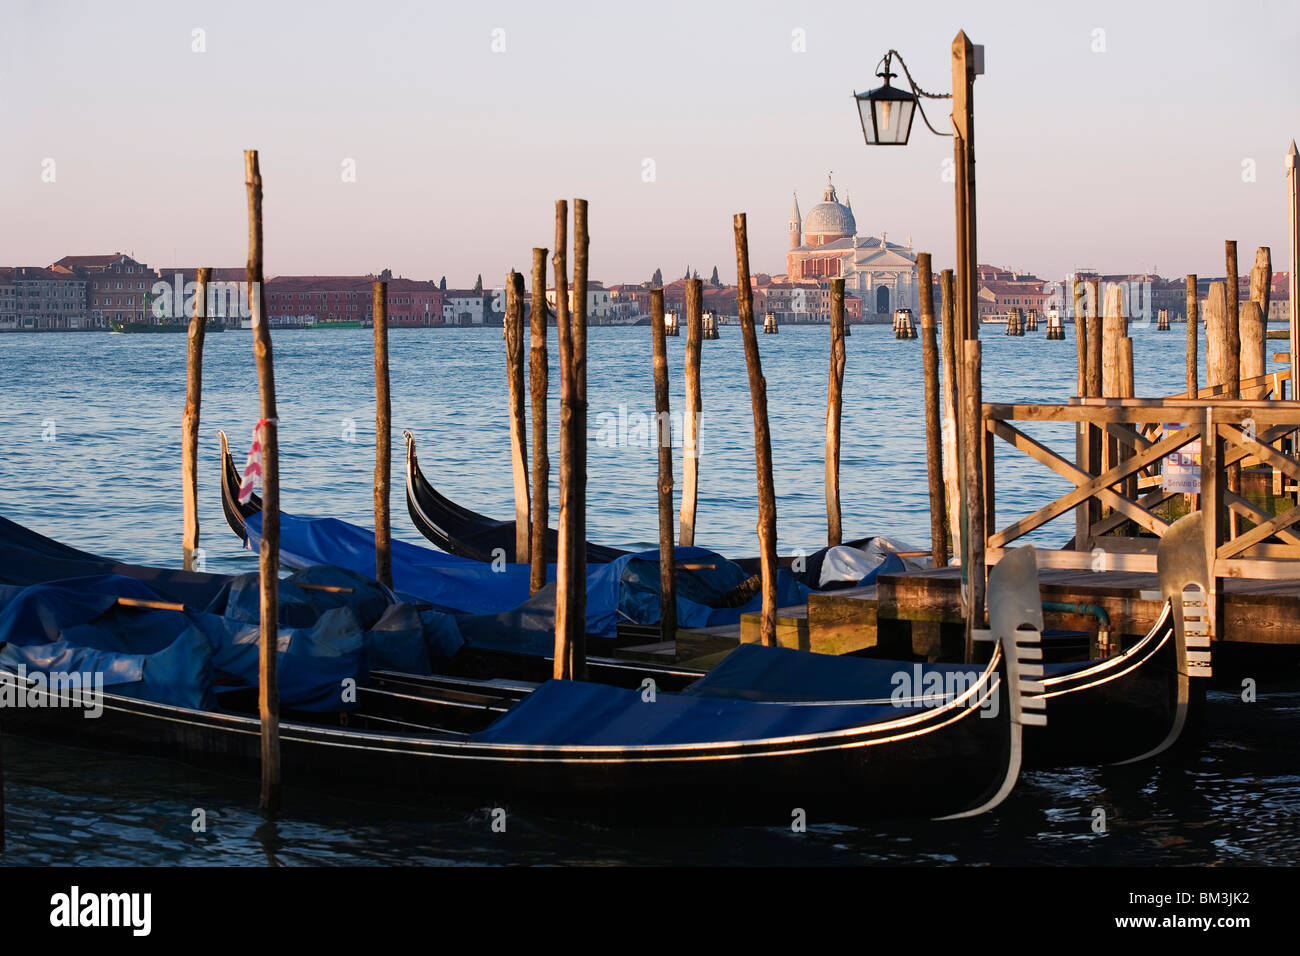 Venice - View across the Grand Canal from San Marco towards Santa Maria della Salute with Gondolas moored in the - Stock Image